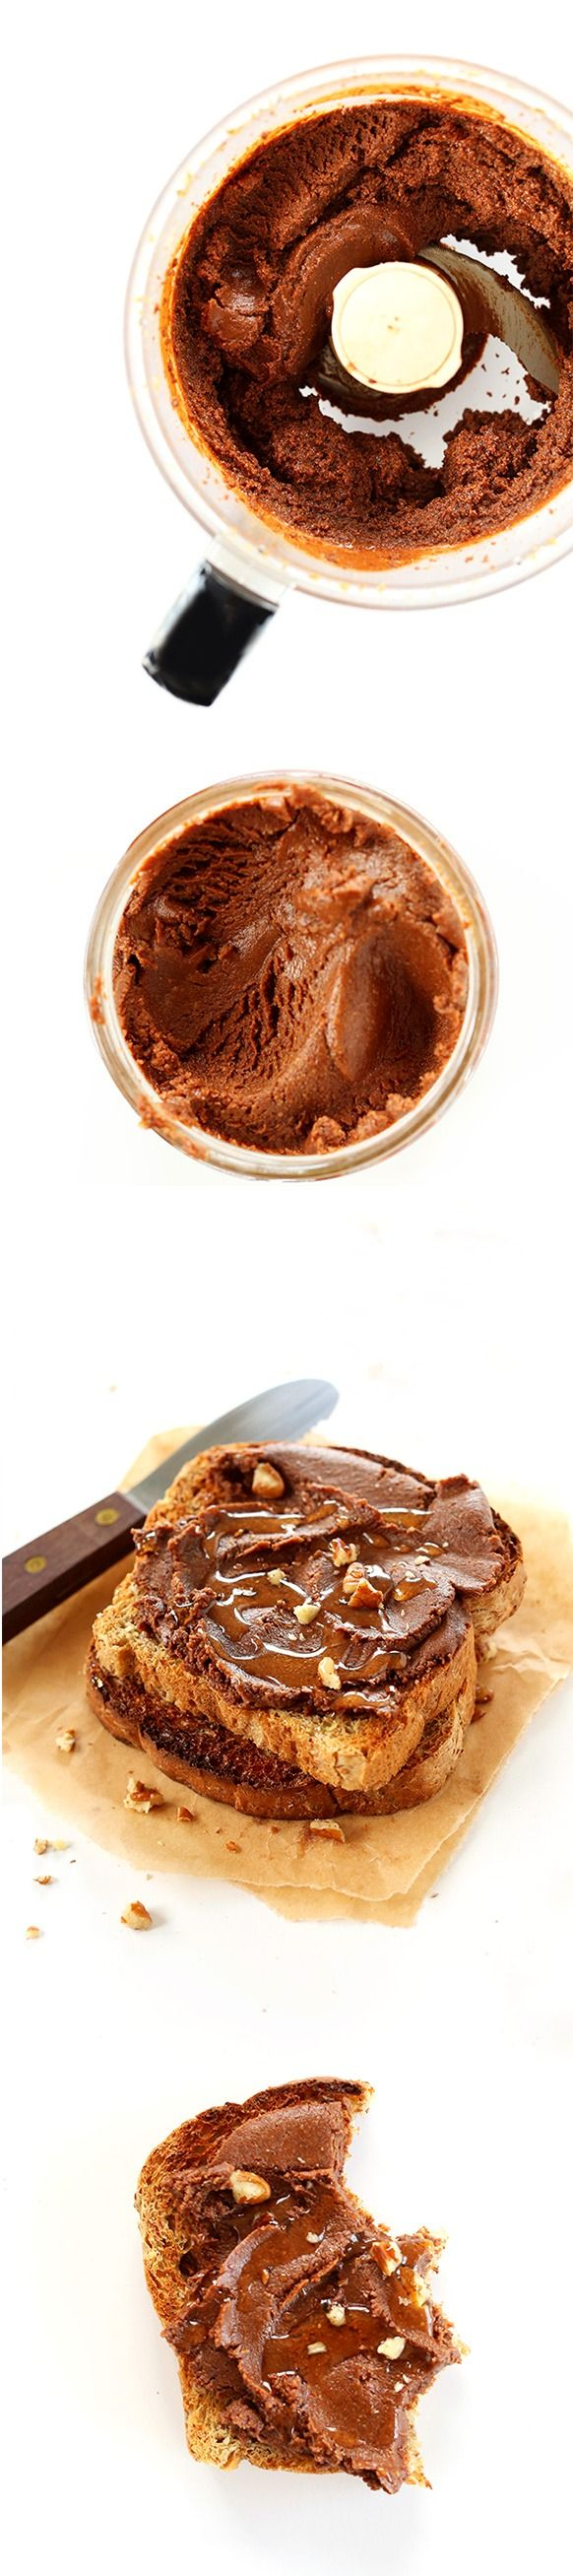 Brownie Batter Spread! So easy and delicious and taste JUST like a brownie in spread form! #vegan #glutenfree 6 ingredients!